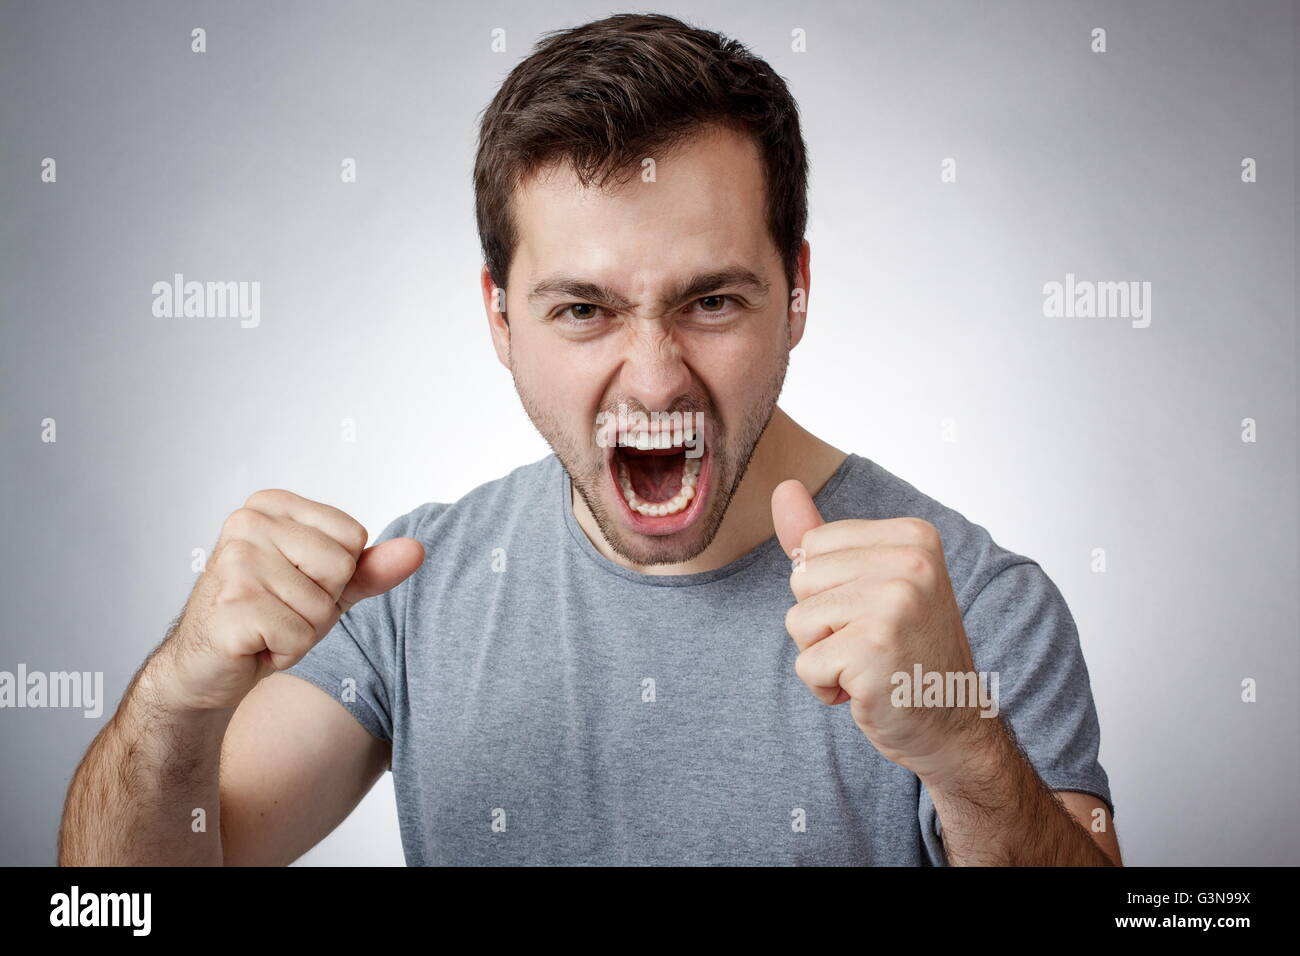 Angry young man clutching fists and shouting - Stock Image